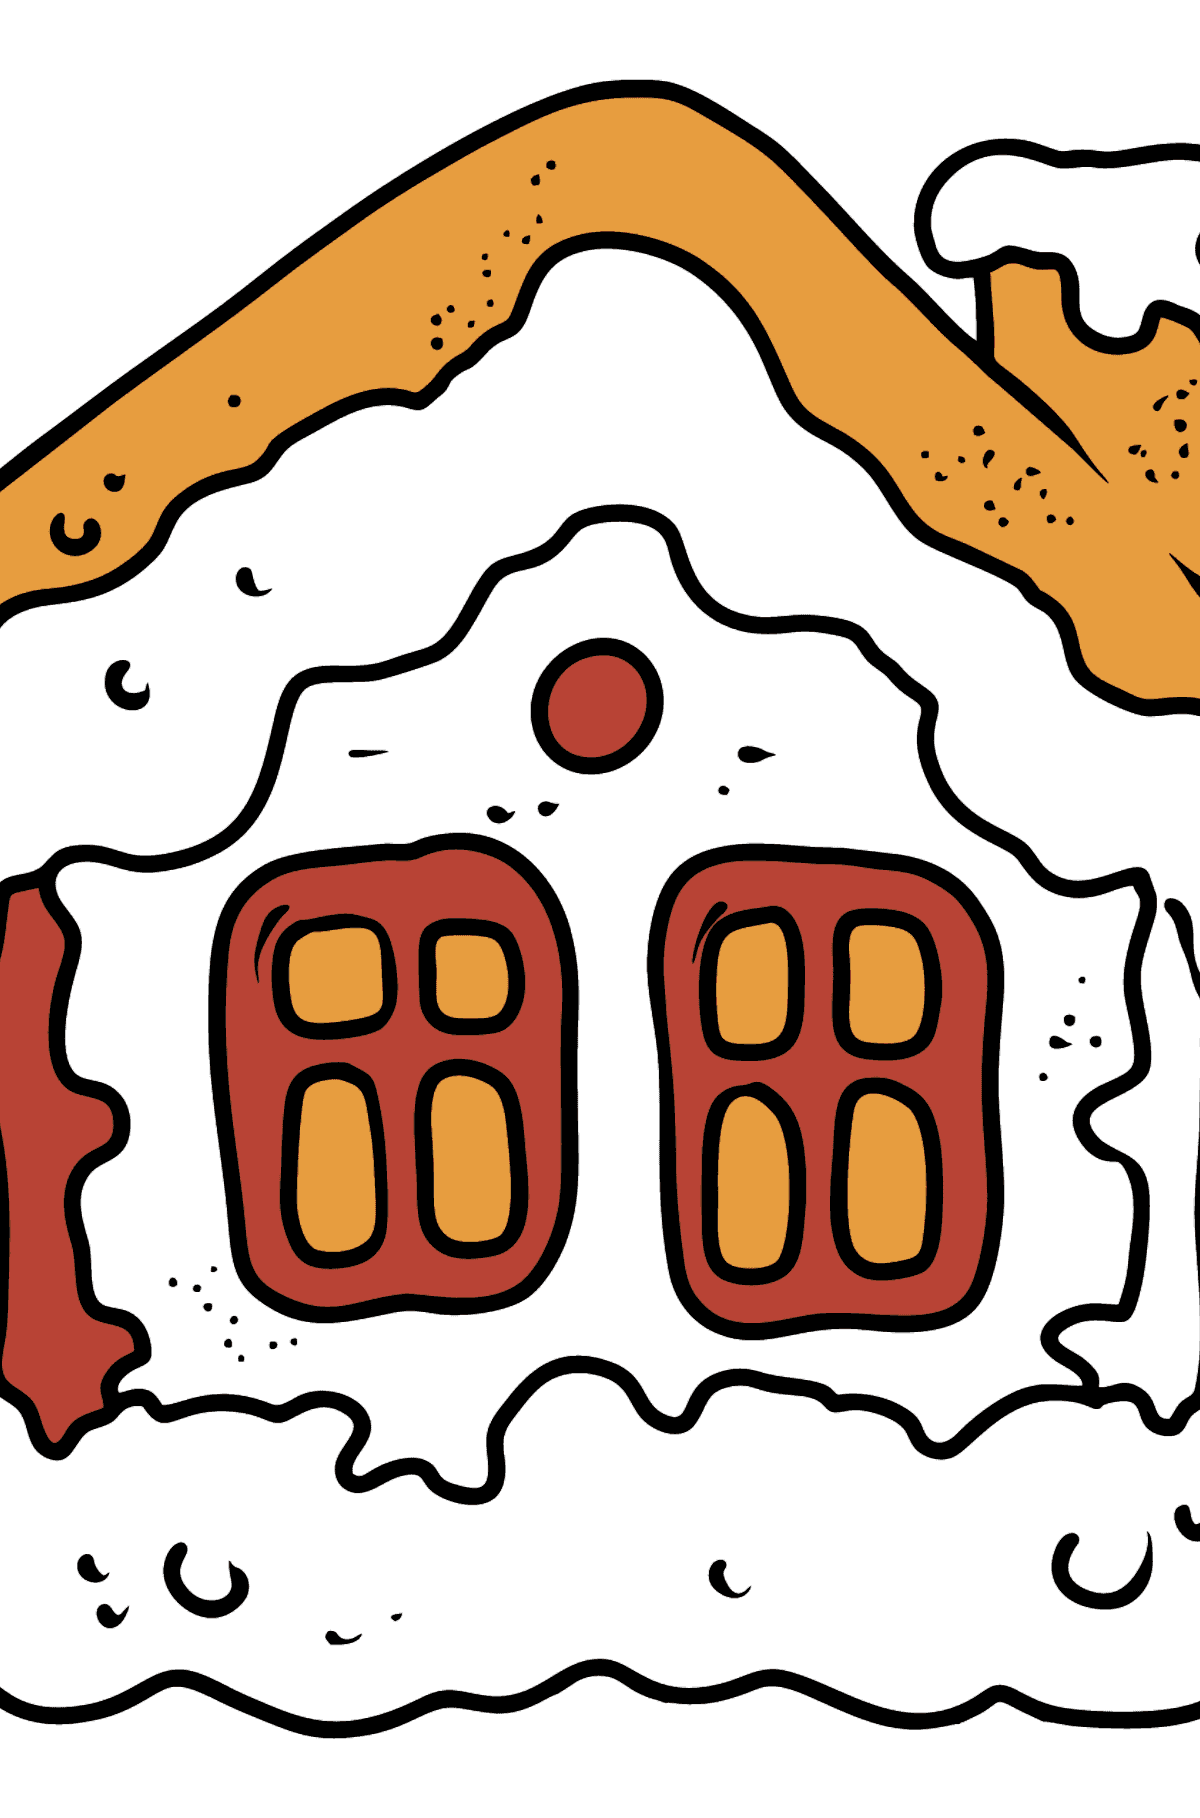 Gingerbread House coloring page - Coloring Pages for Kids